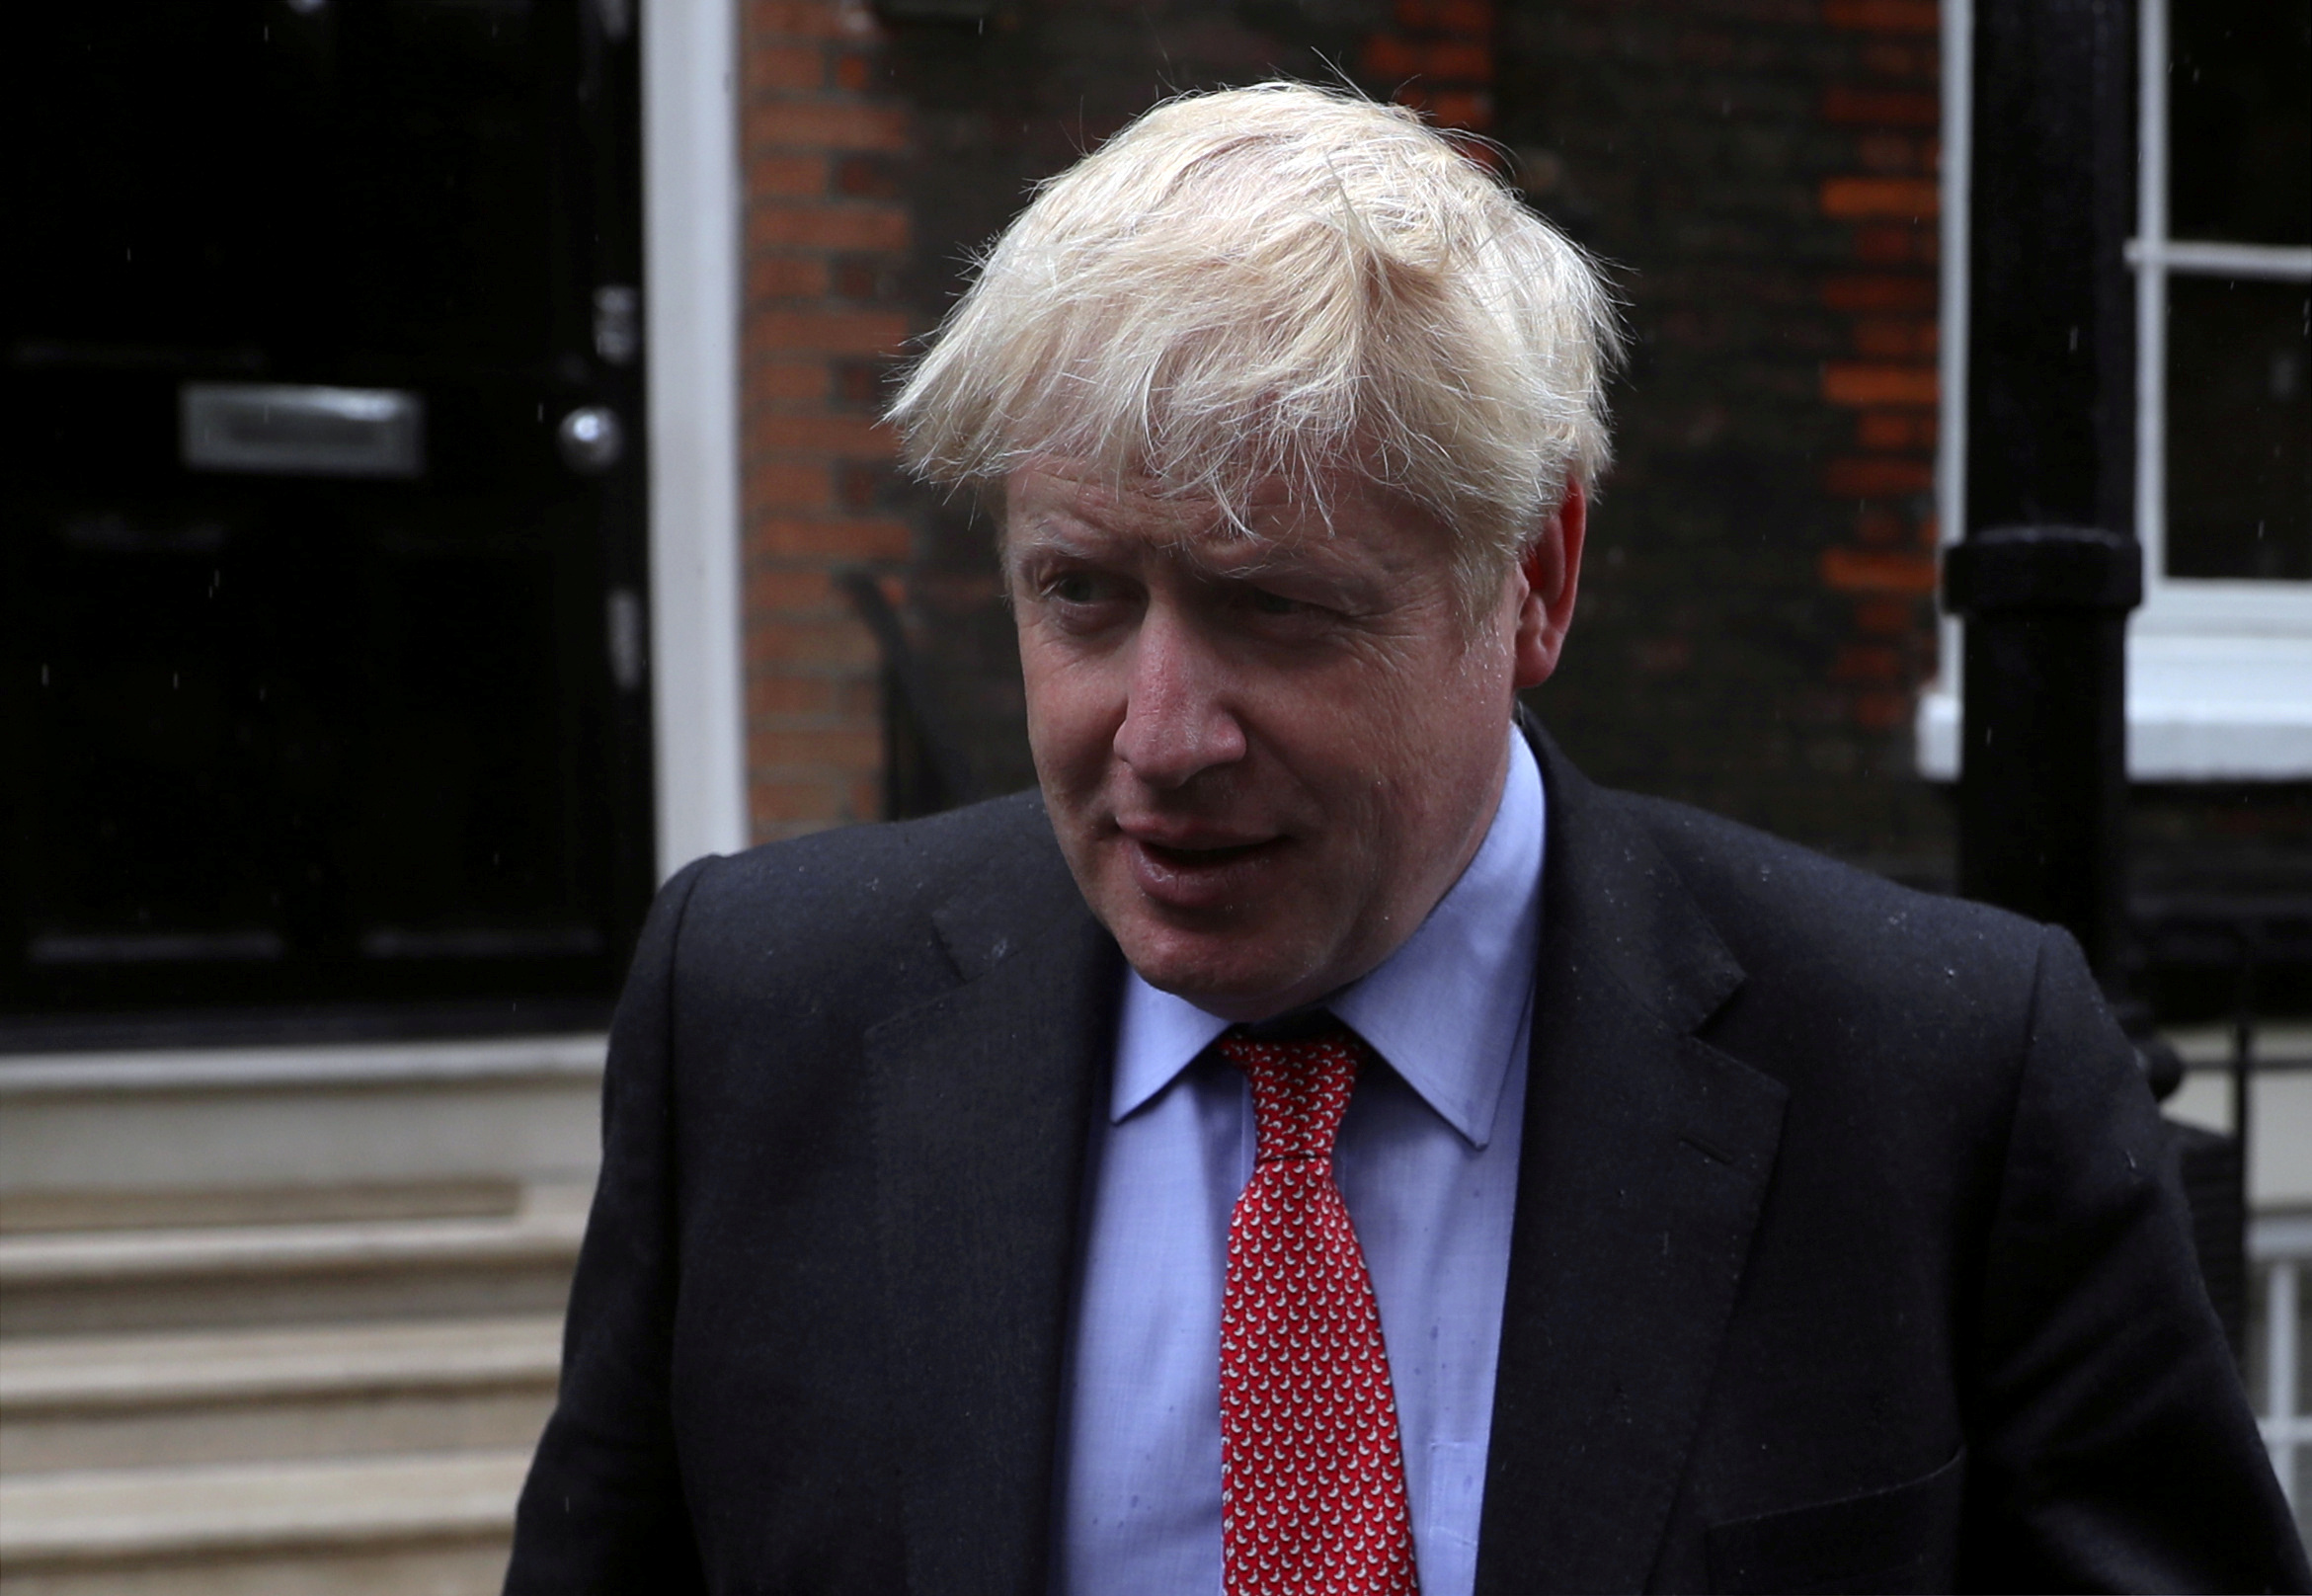 FILE PHOTO: Boris Johnson, a leadership candidate for Britain's Conservative Party, leaves offices in central in London, Britain, July 19, 2019. REUTERS/Simon Dawson/File Photo